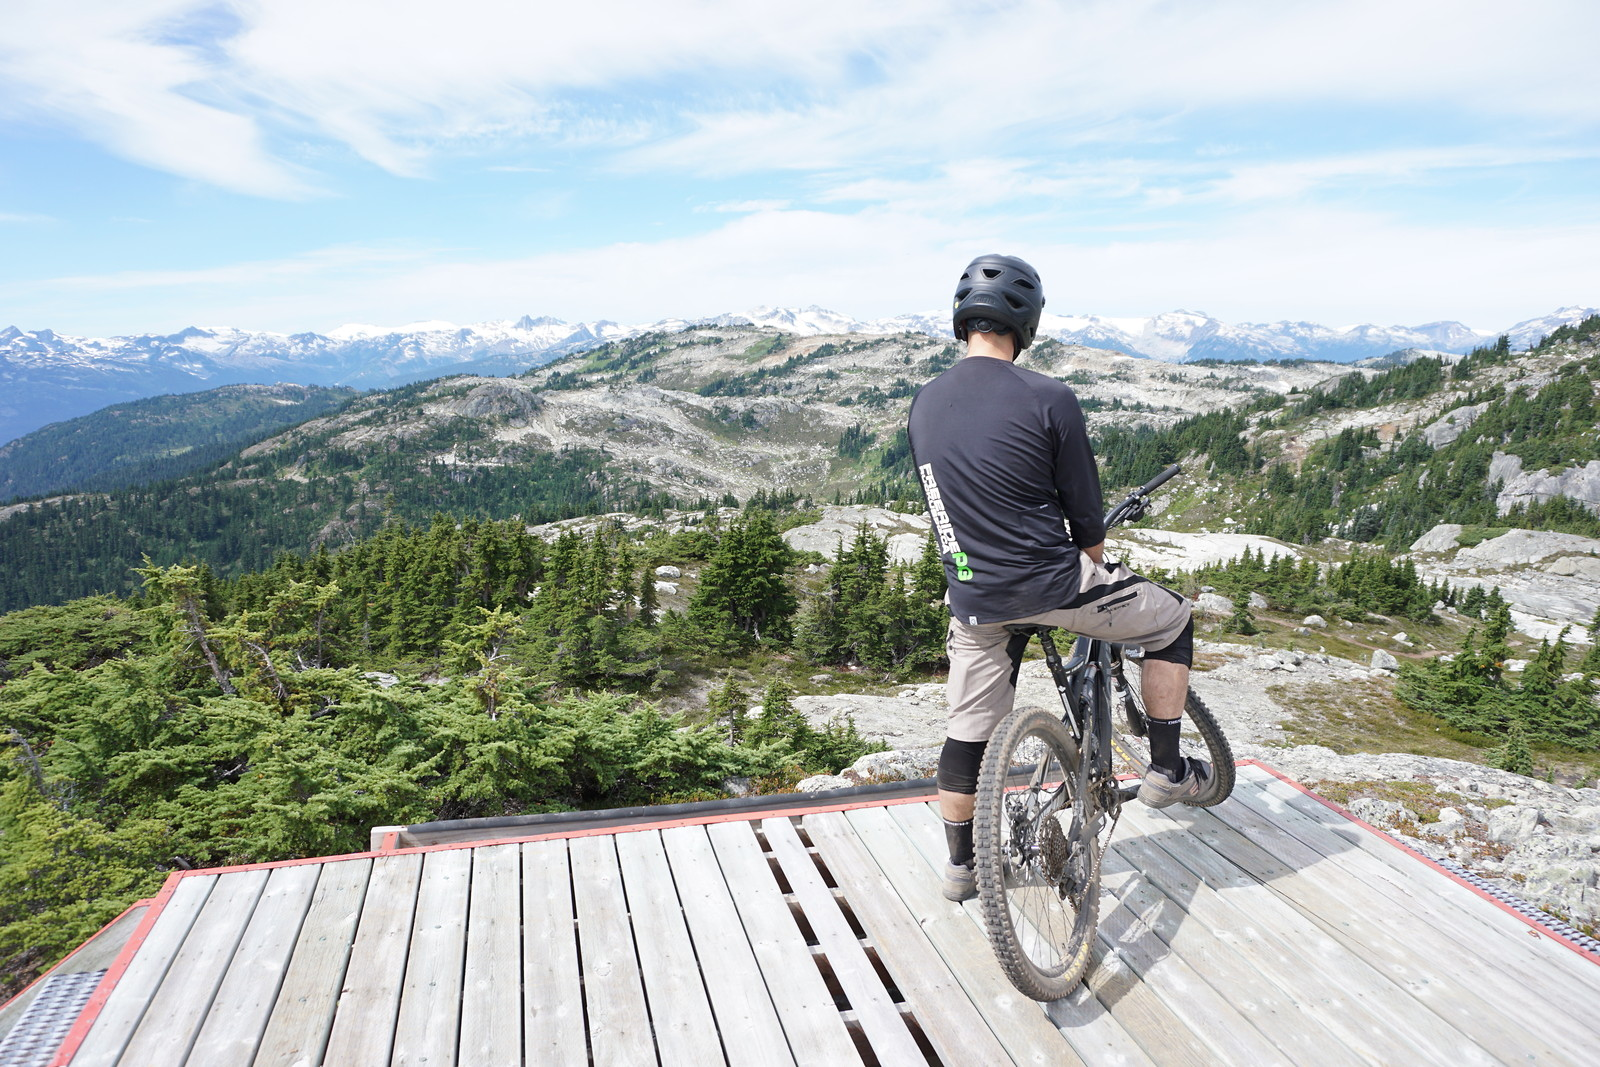 Whistler Happy hour look out - Graeme.paterson - Mountain Biking Pictures - Vital MTB